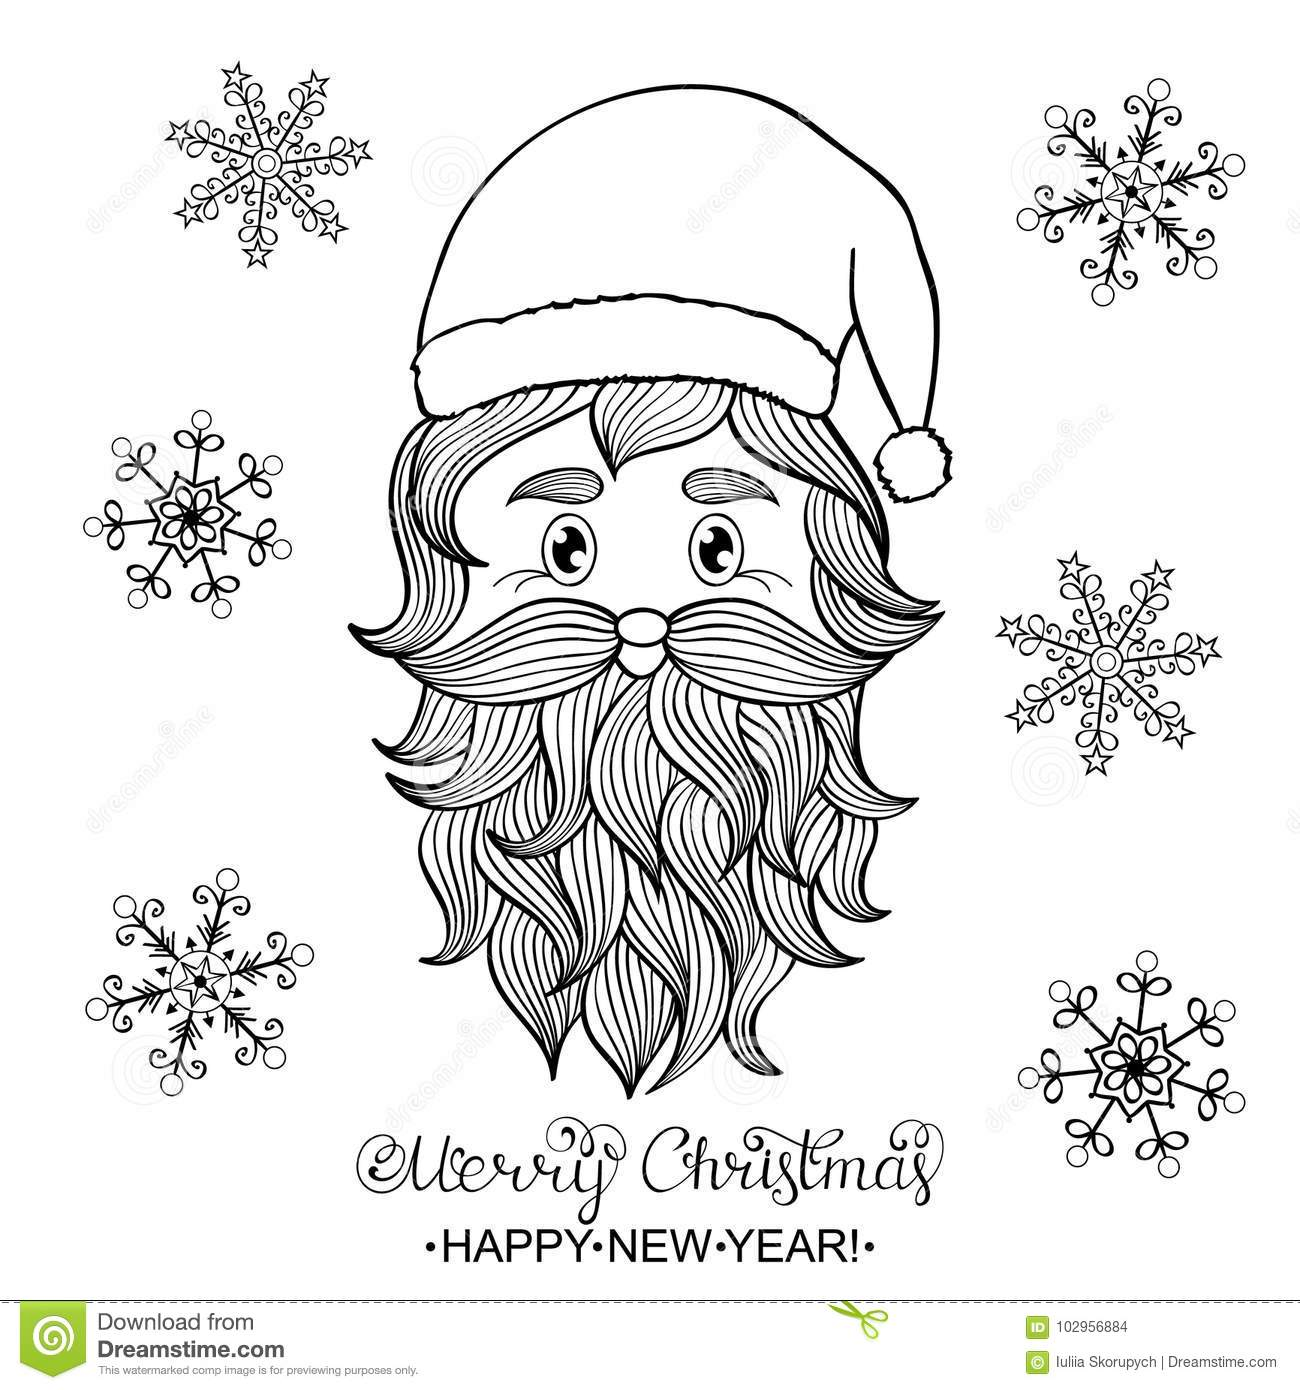 Santa Head Coloring With Hand Drawn Of Stock Vector Illustration Black 102956884